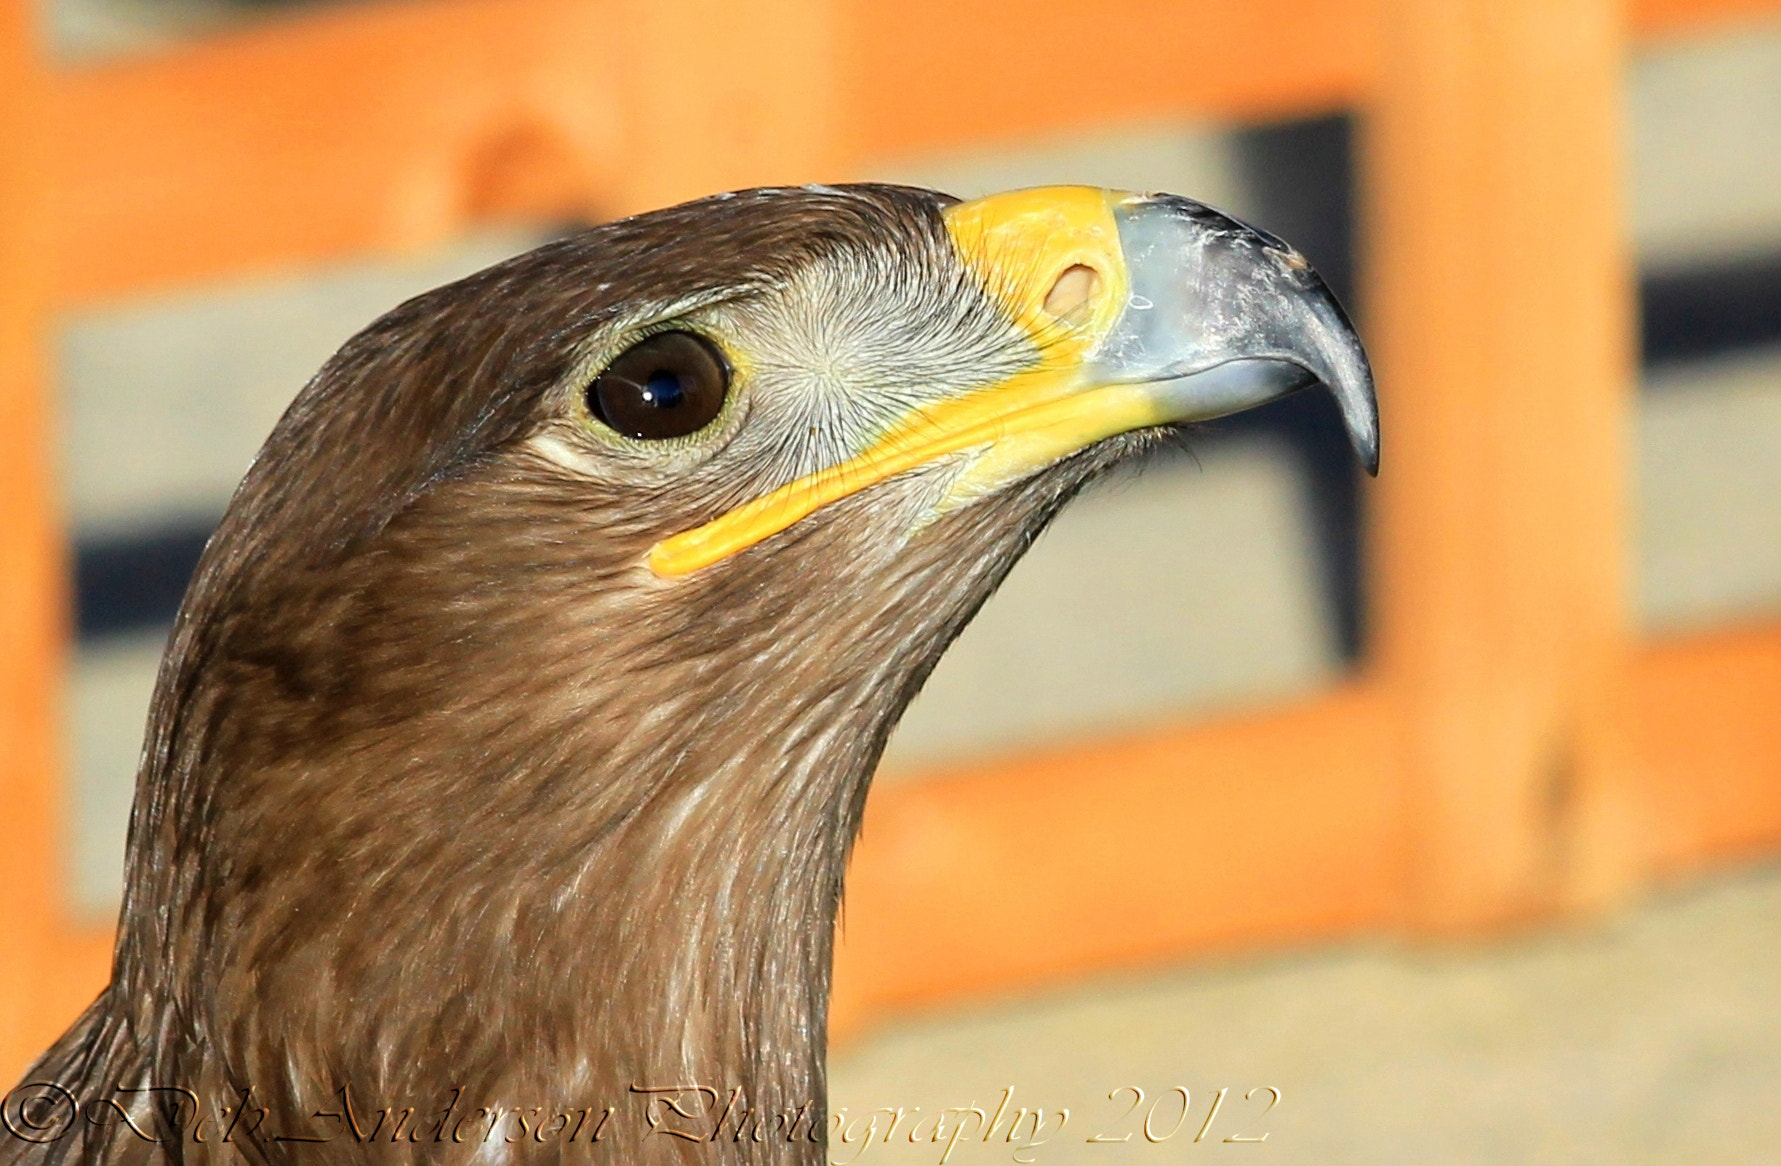 Photograph Steppe Eagle up close. by Deborah Anderson-Marland on 500px